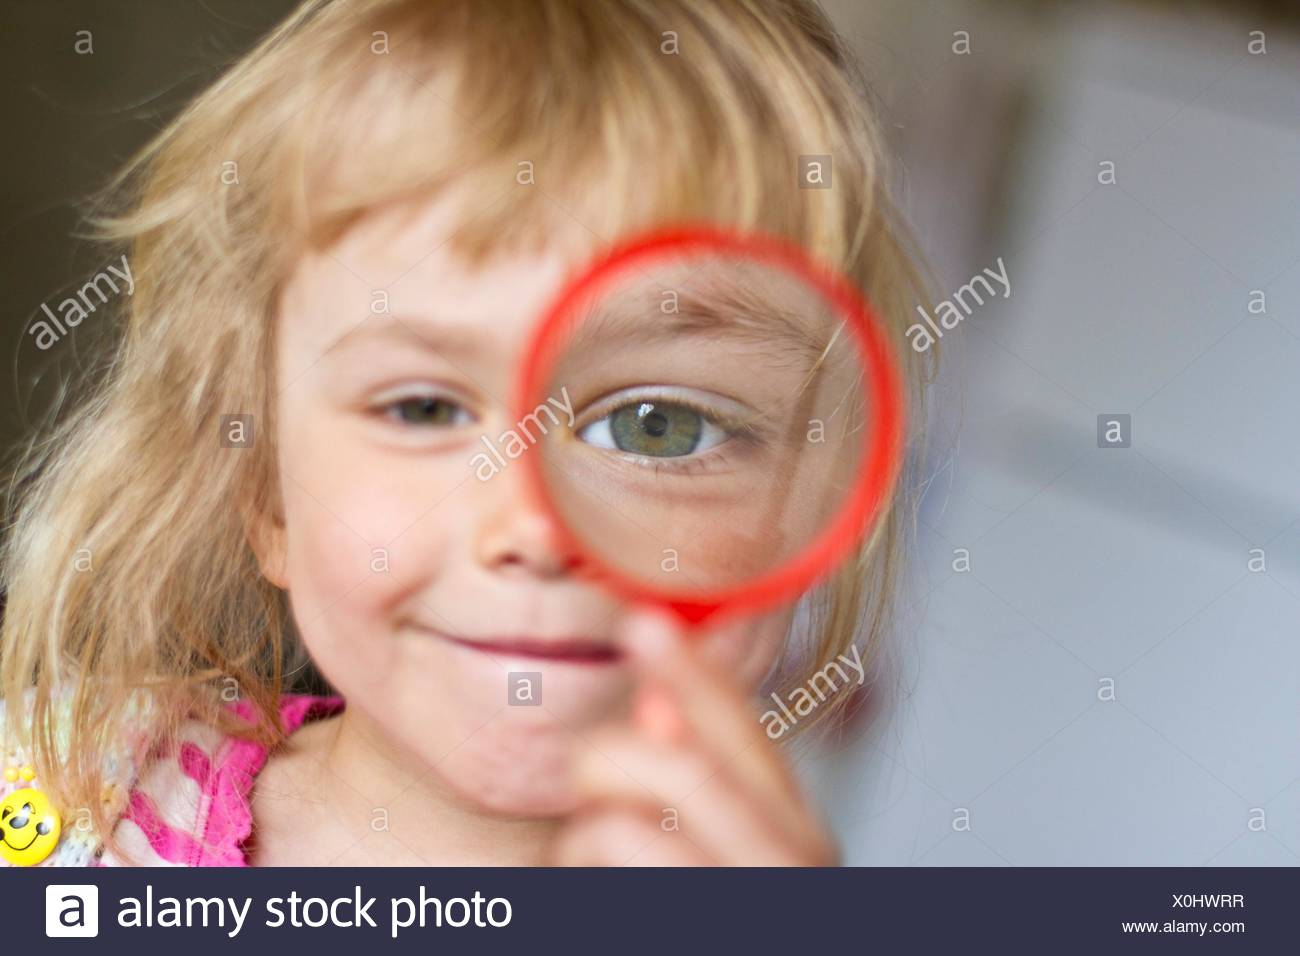 Blond girl looking through lupe - Stock Image